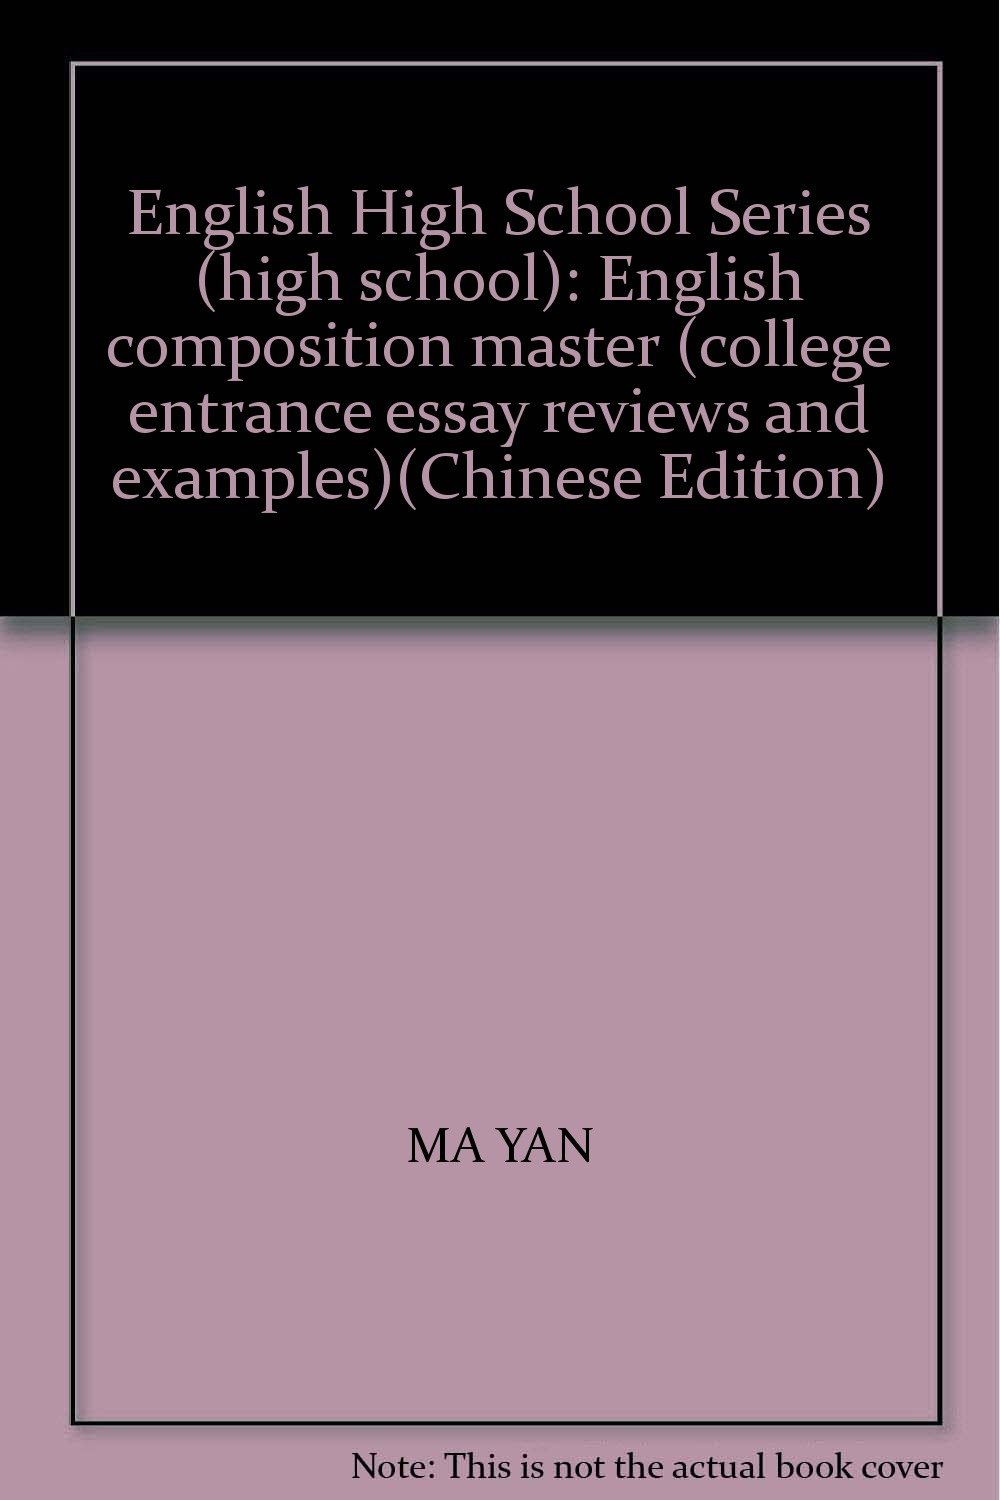 english high school series high school english composition master  english high school series high school english composition master  college entrance essay reviews and exampleschinese edition paperback   january